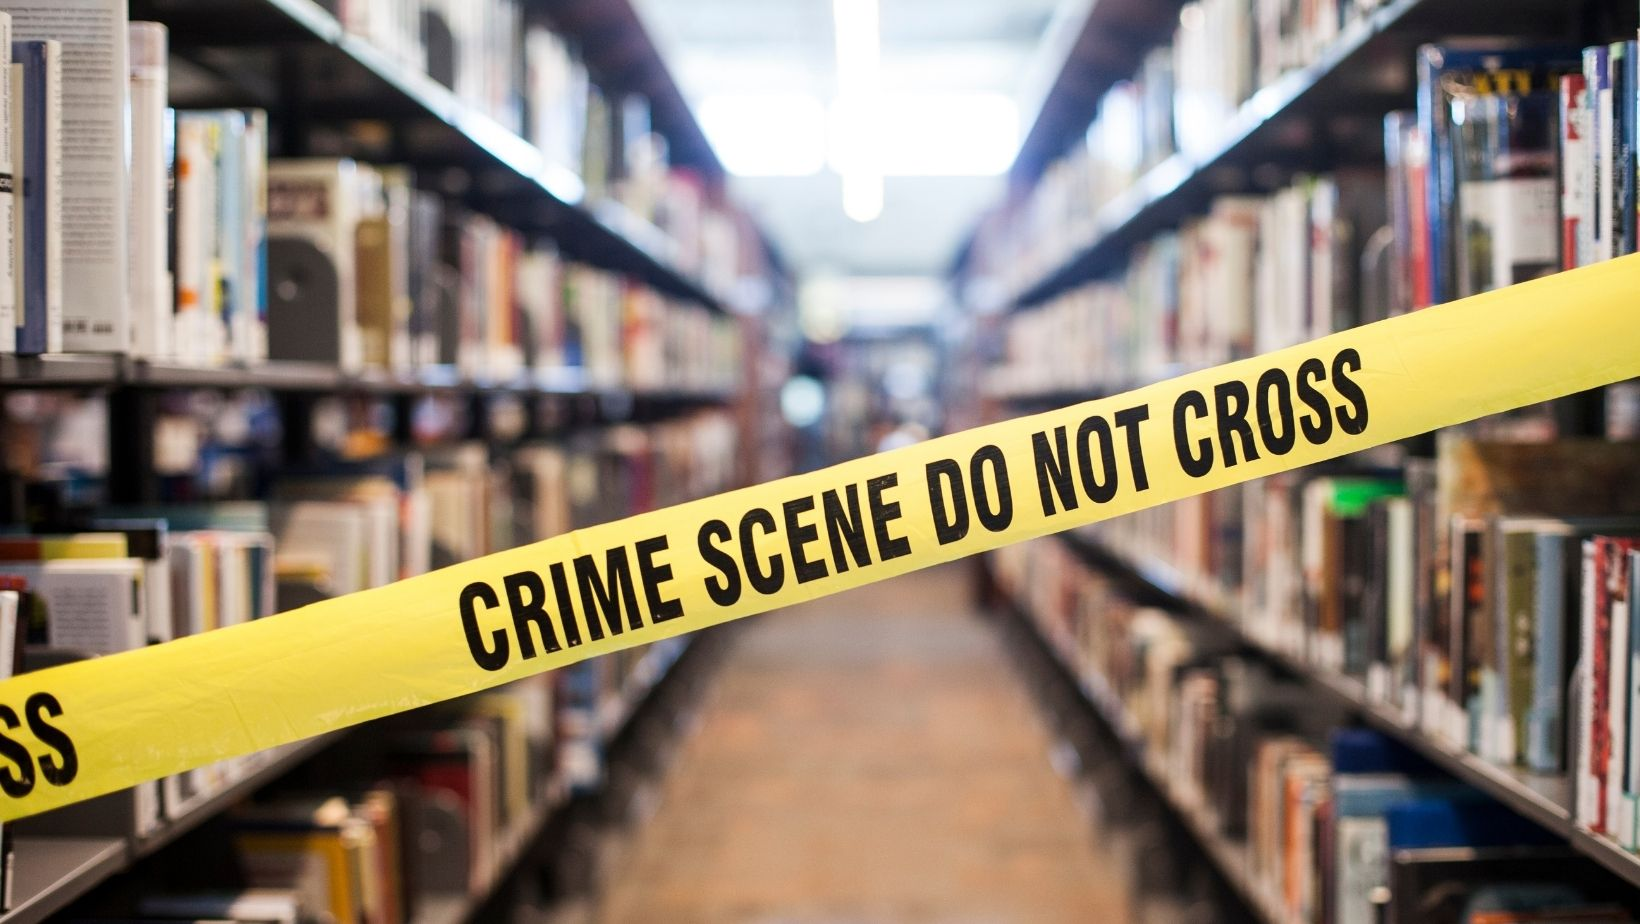 Crime books in a Norwegian library